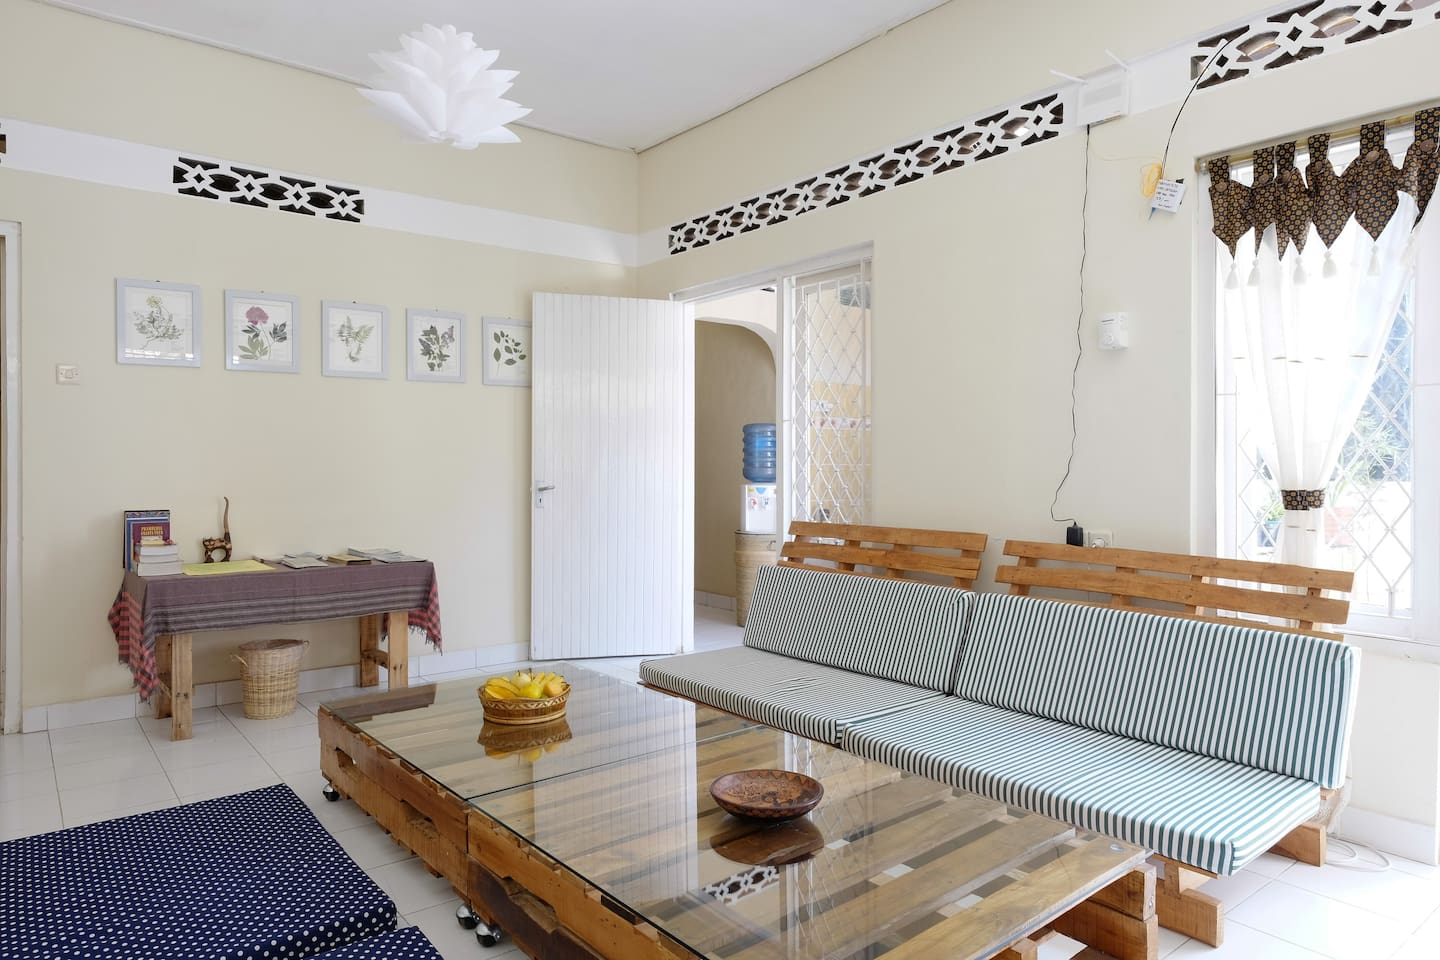 Awesome place, generous and exceptionally helpful hosts. Great location not too far from the centre of Yogya. Great chilled atmosphere and first class company. Would go back for sure!   -Seth Crosby- *****